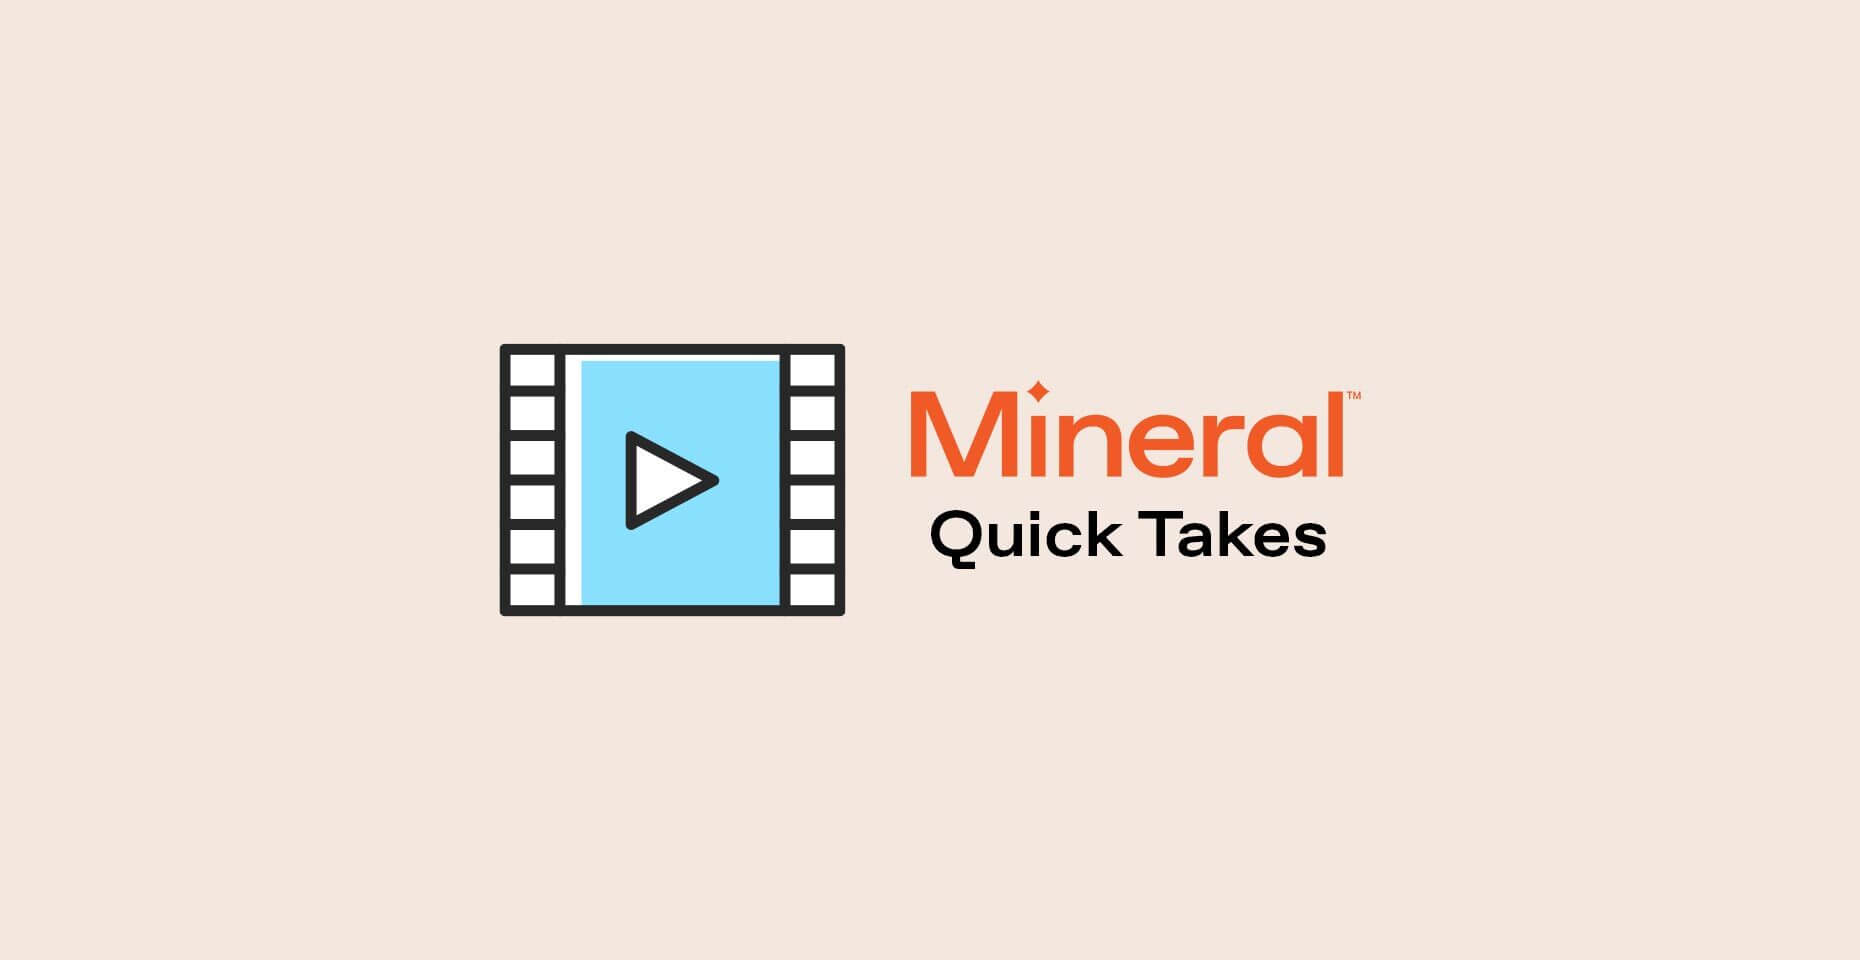 Mineral Quick Takes video thumb